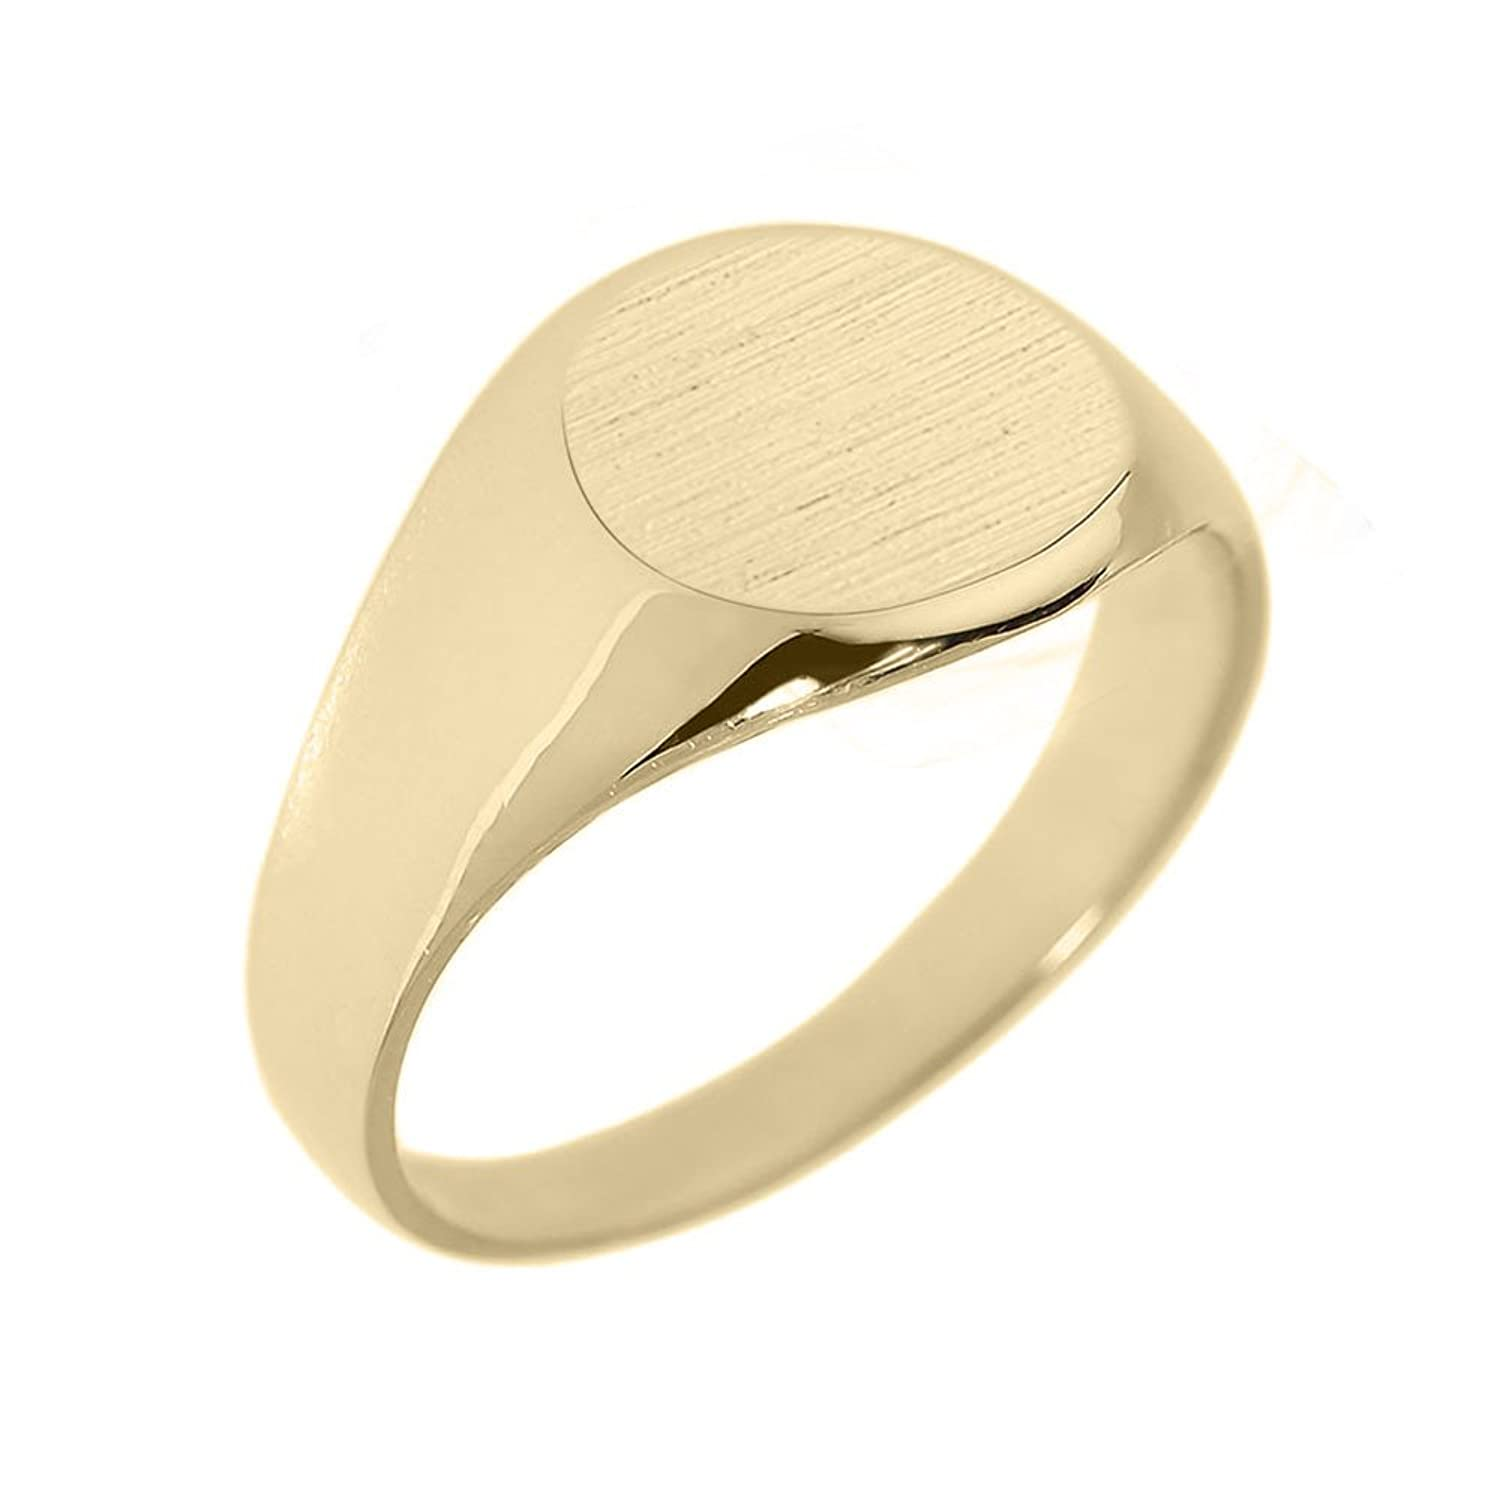 initial gold mens rings rectangle newburysonline signet ring rectangular yellow square blank